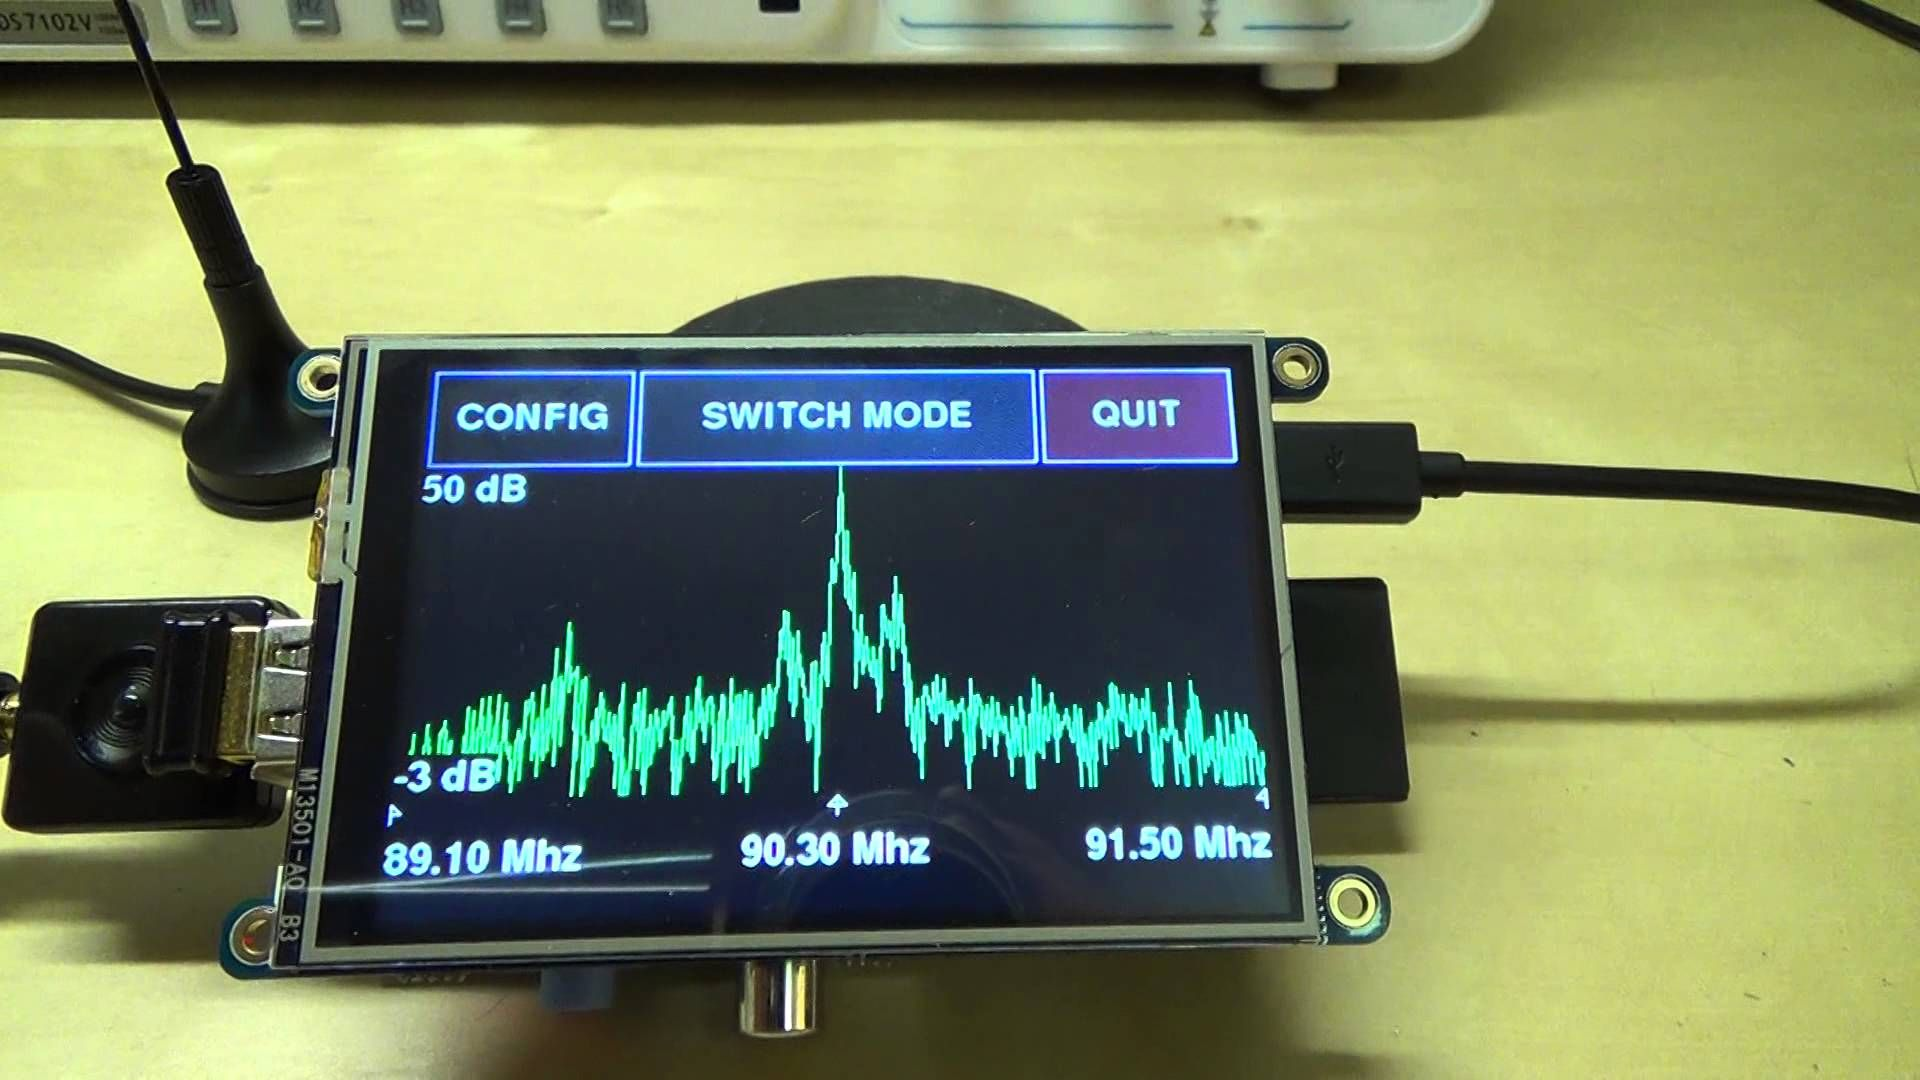 Freq Show: Raspberry Pi RTL-SDR Scanner is a new guide in the